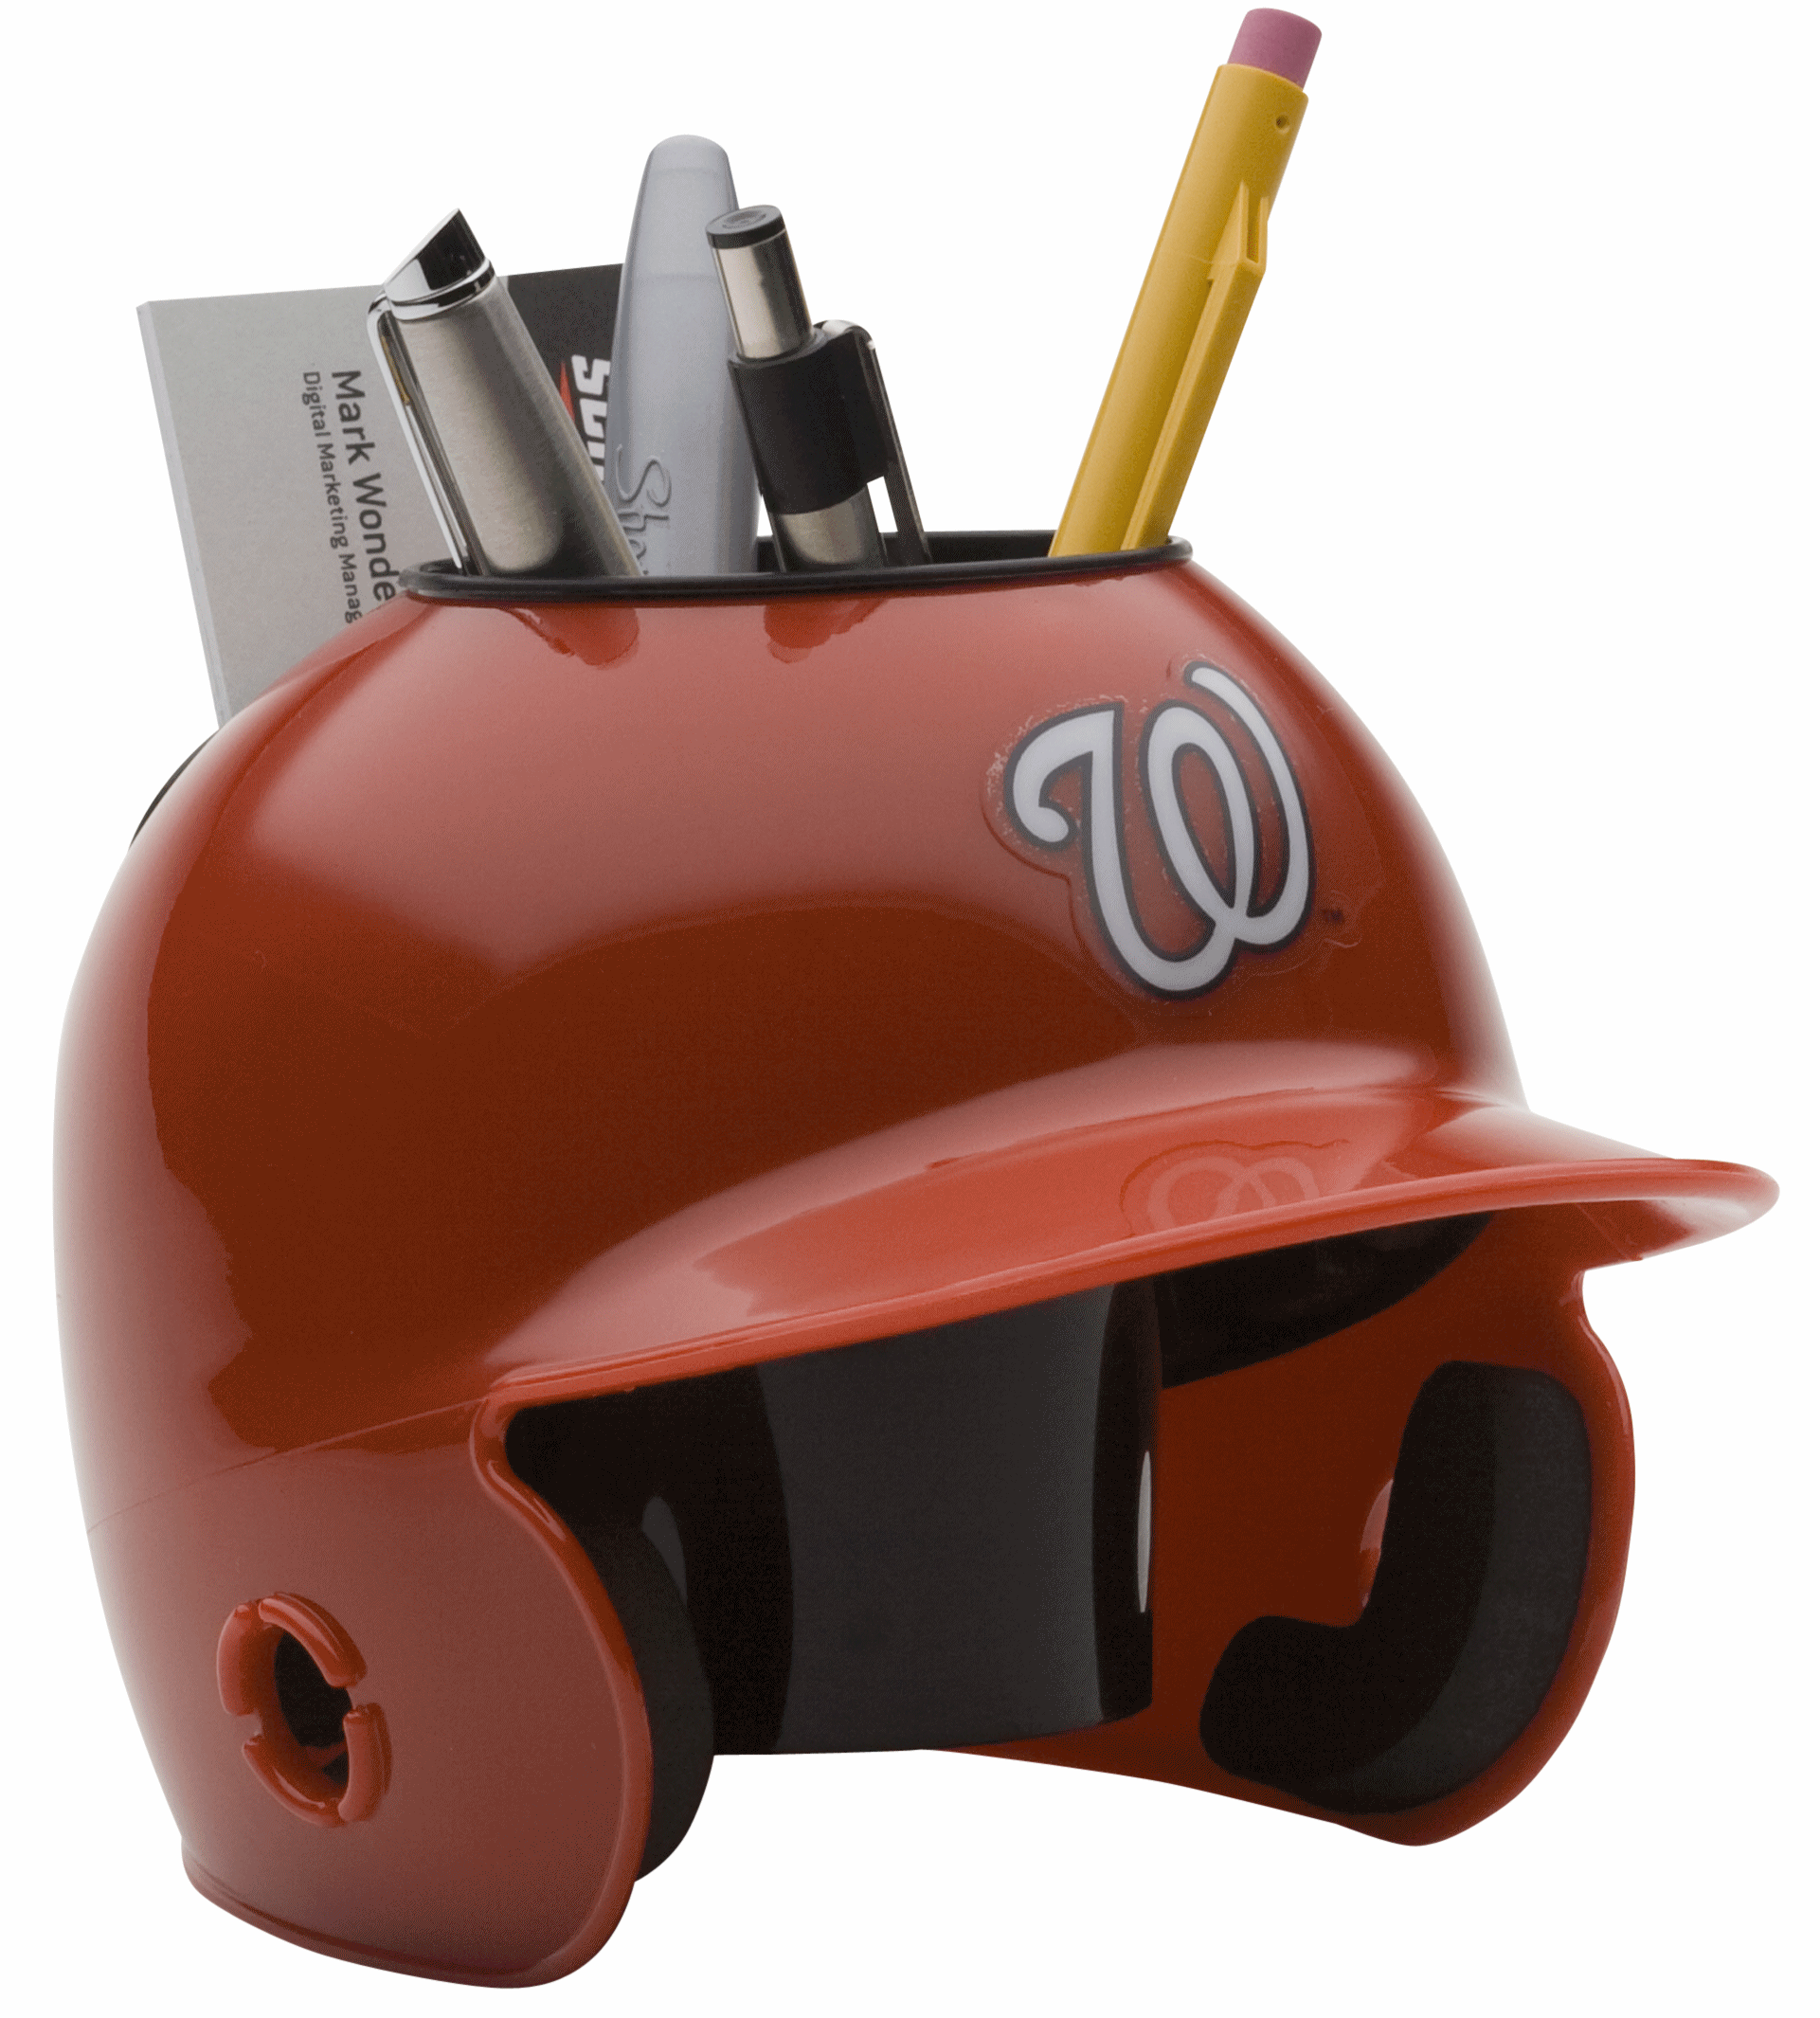 Washington Nationals Miniature Batters Helmet Desk Caddy